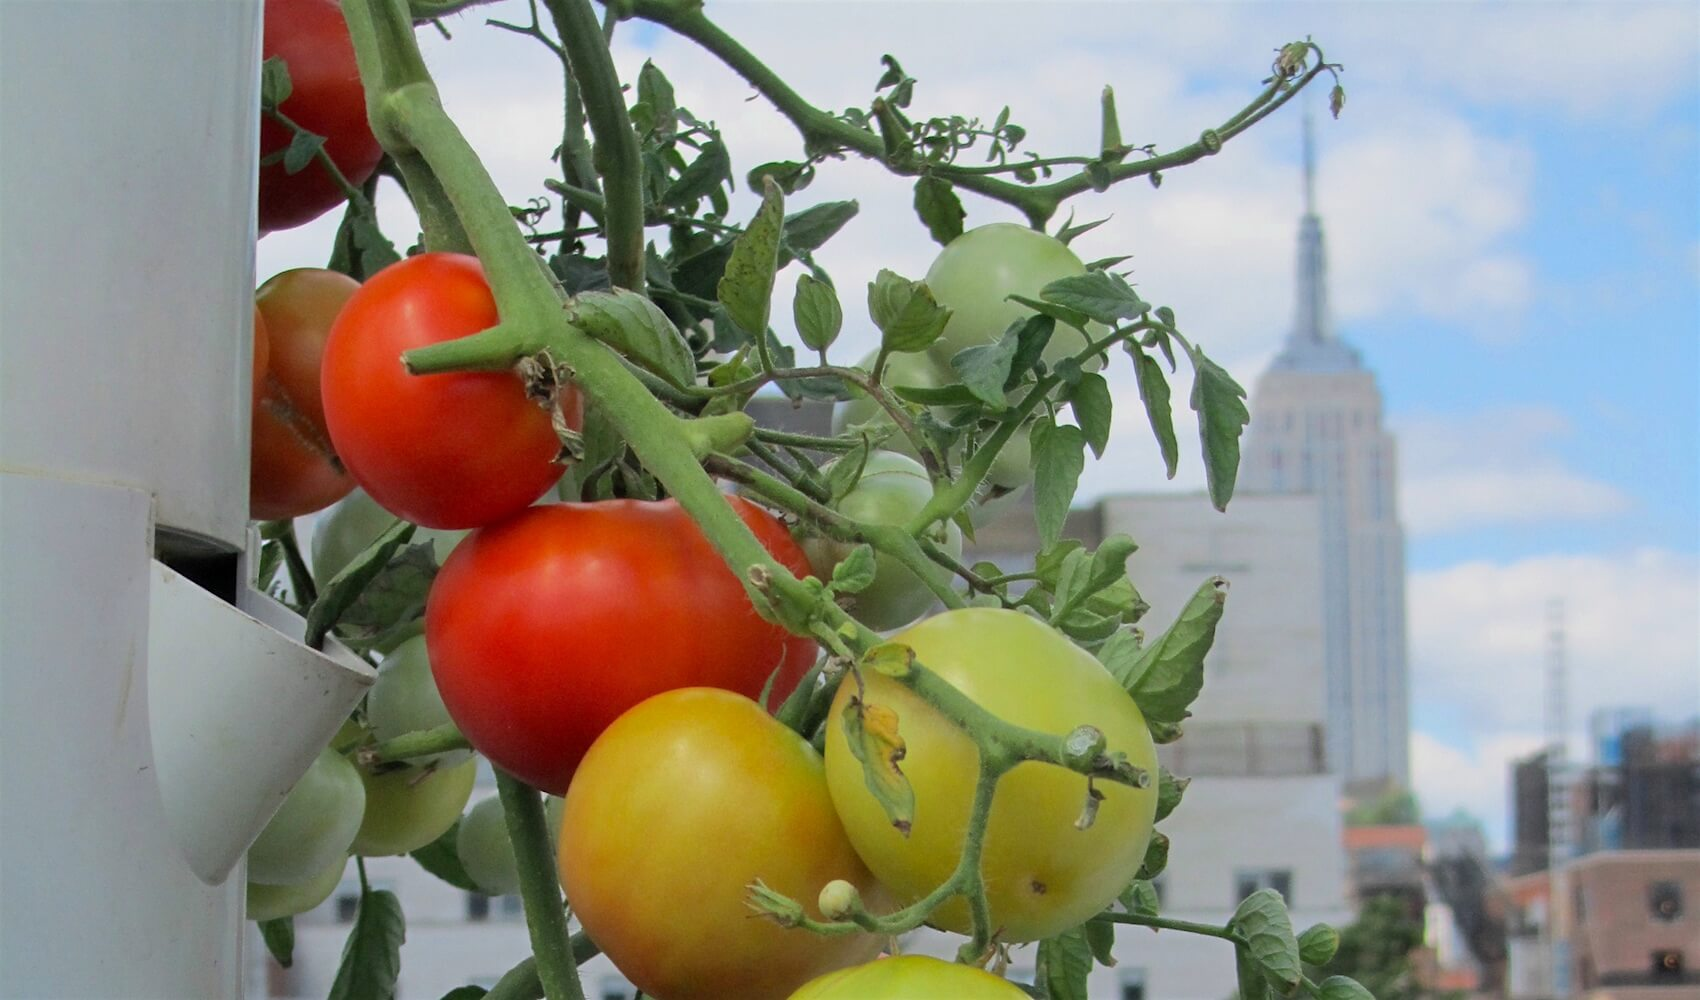 How to Make Your Tomatoes (and Other Produce) Ripen Faster